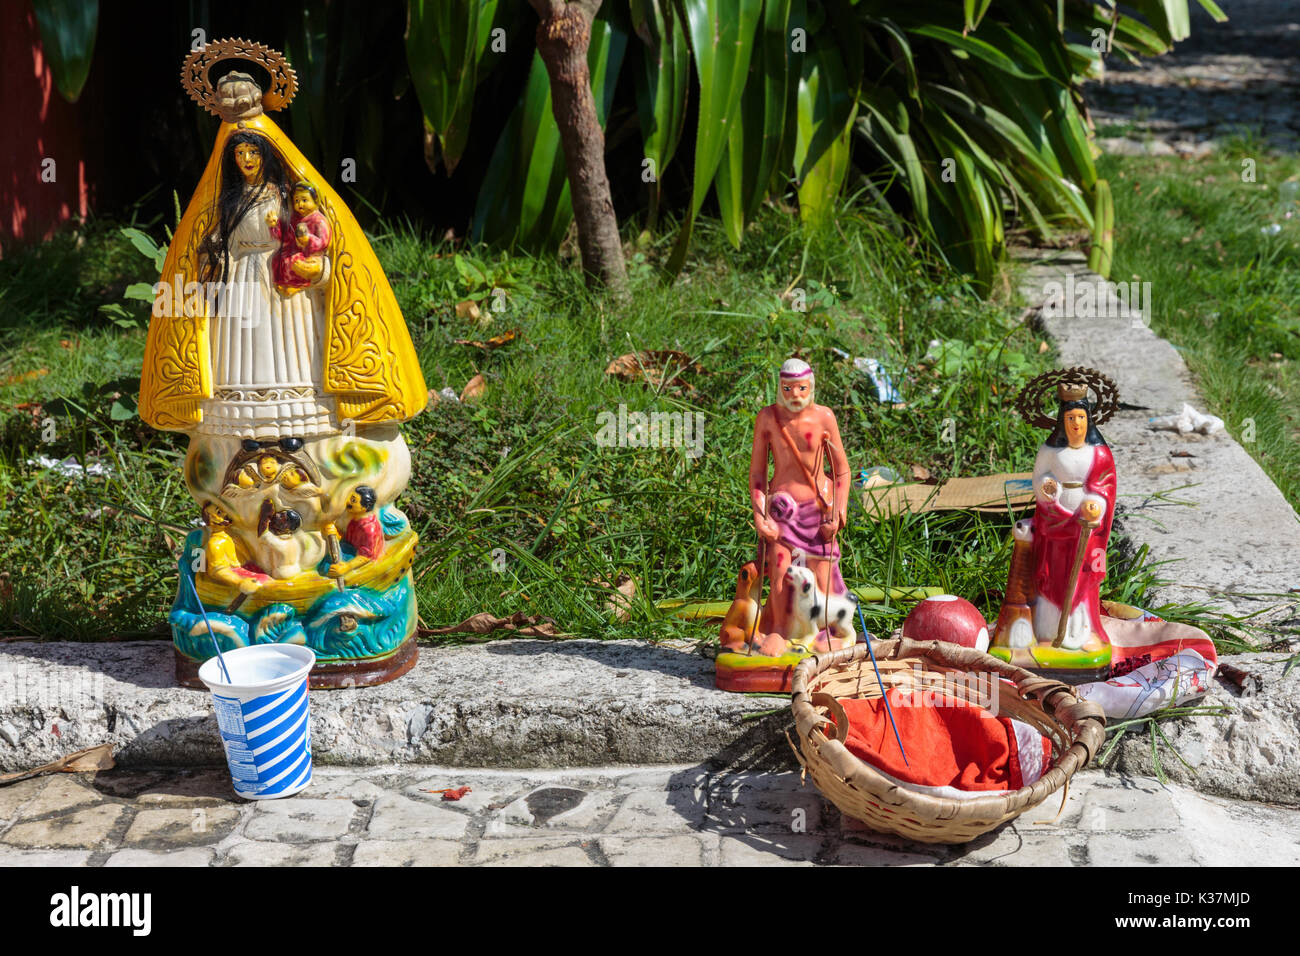 Santeria dolls and religious offerings and icons of saints